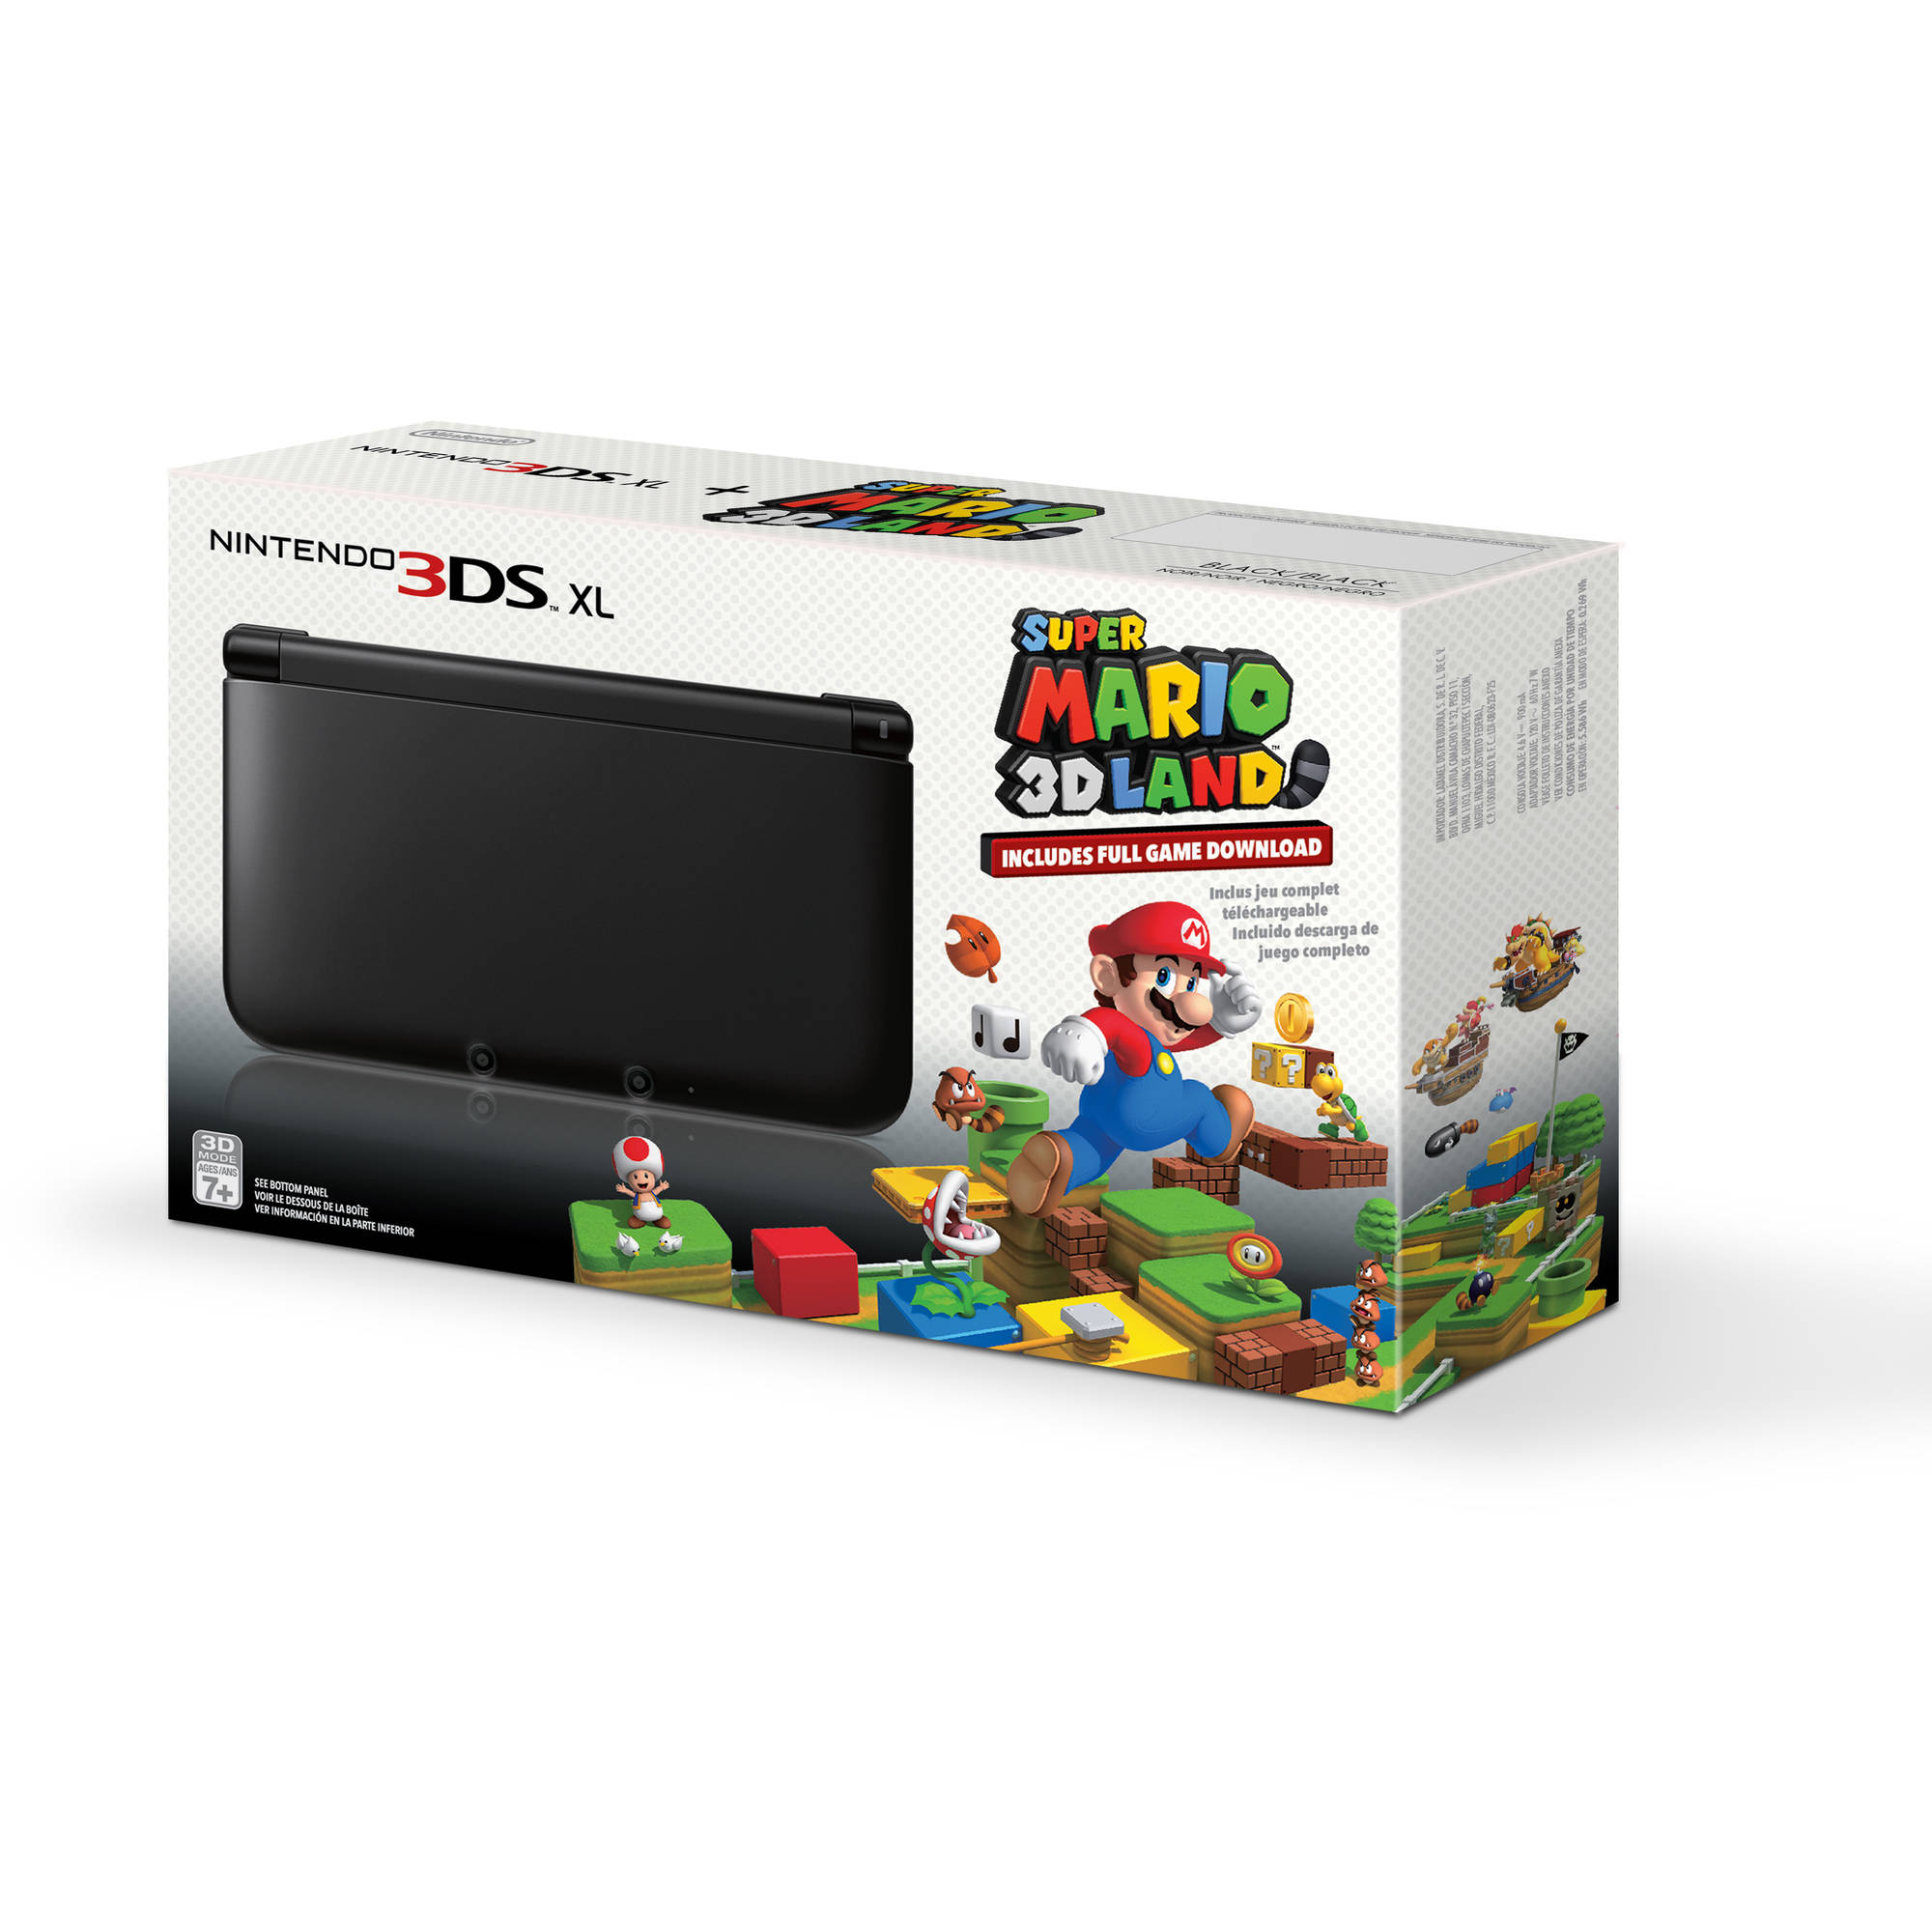 Nintendo 3DS XL Handheld Console with Super Mario 3D Land, Black